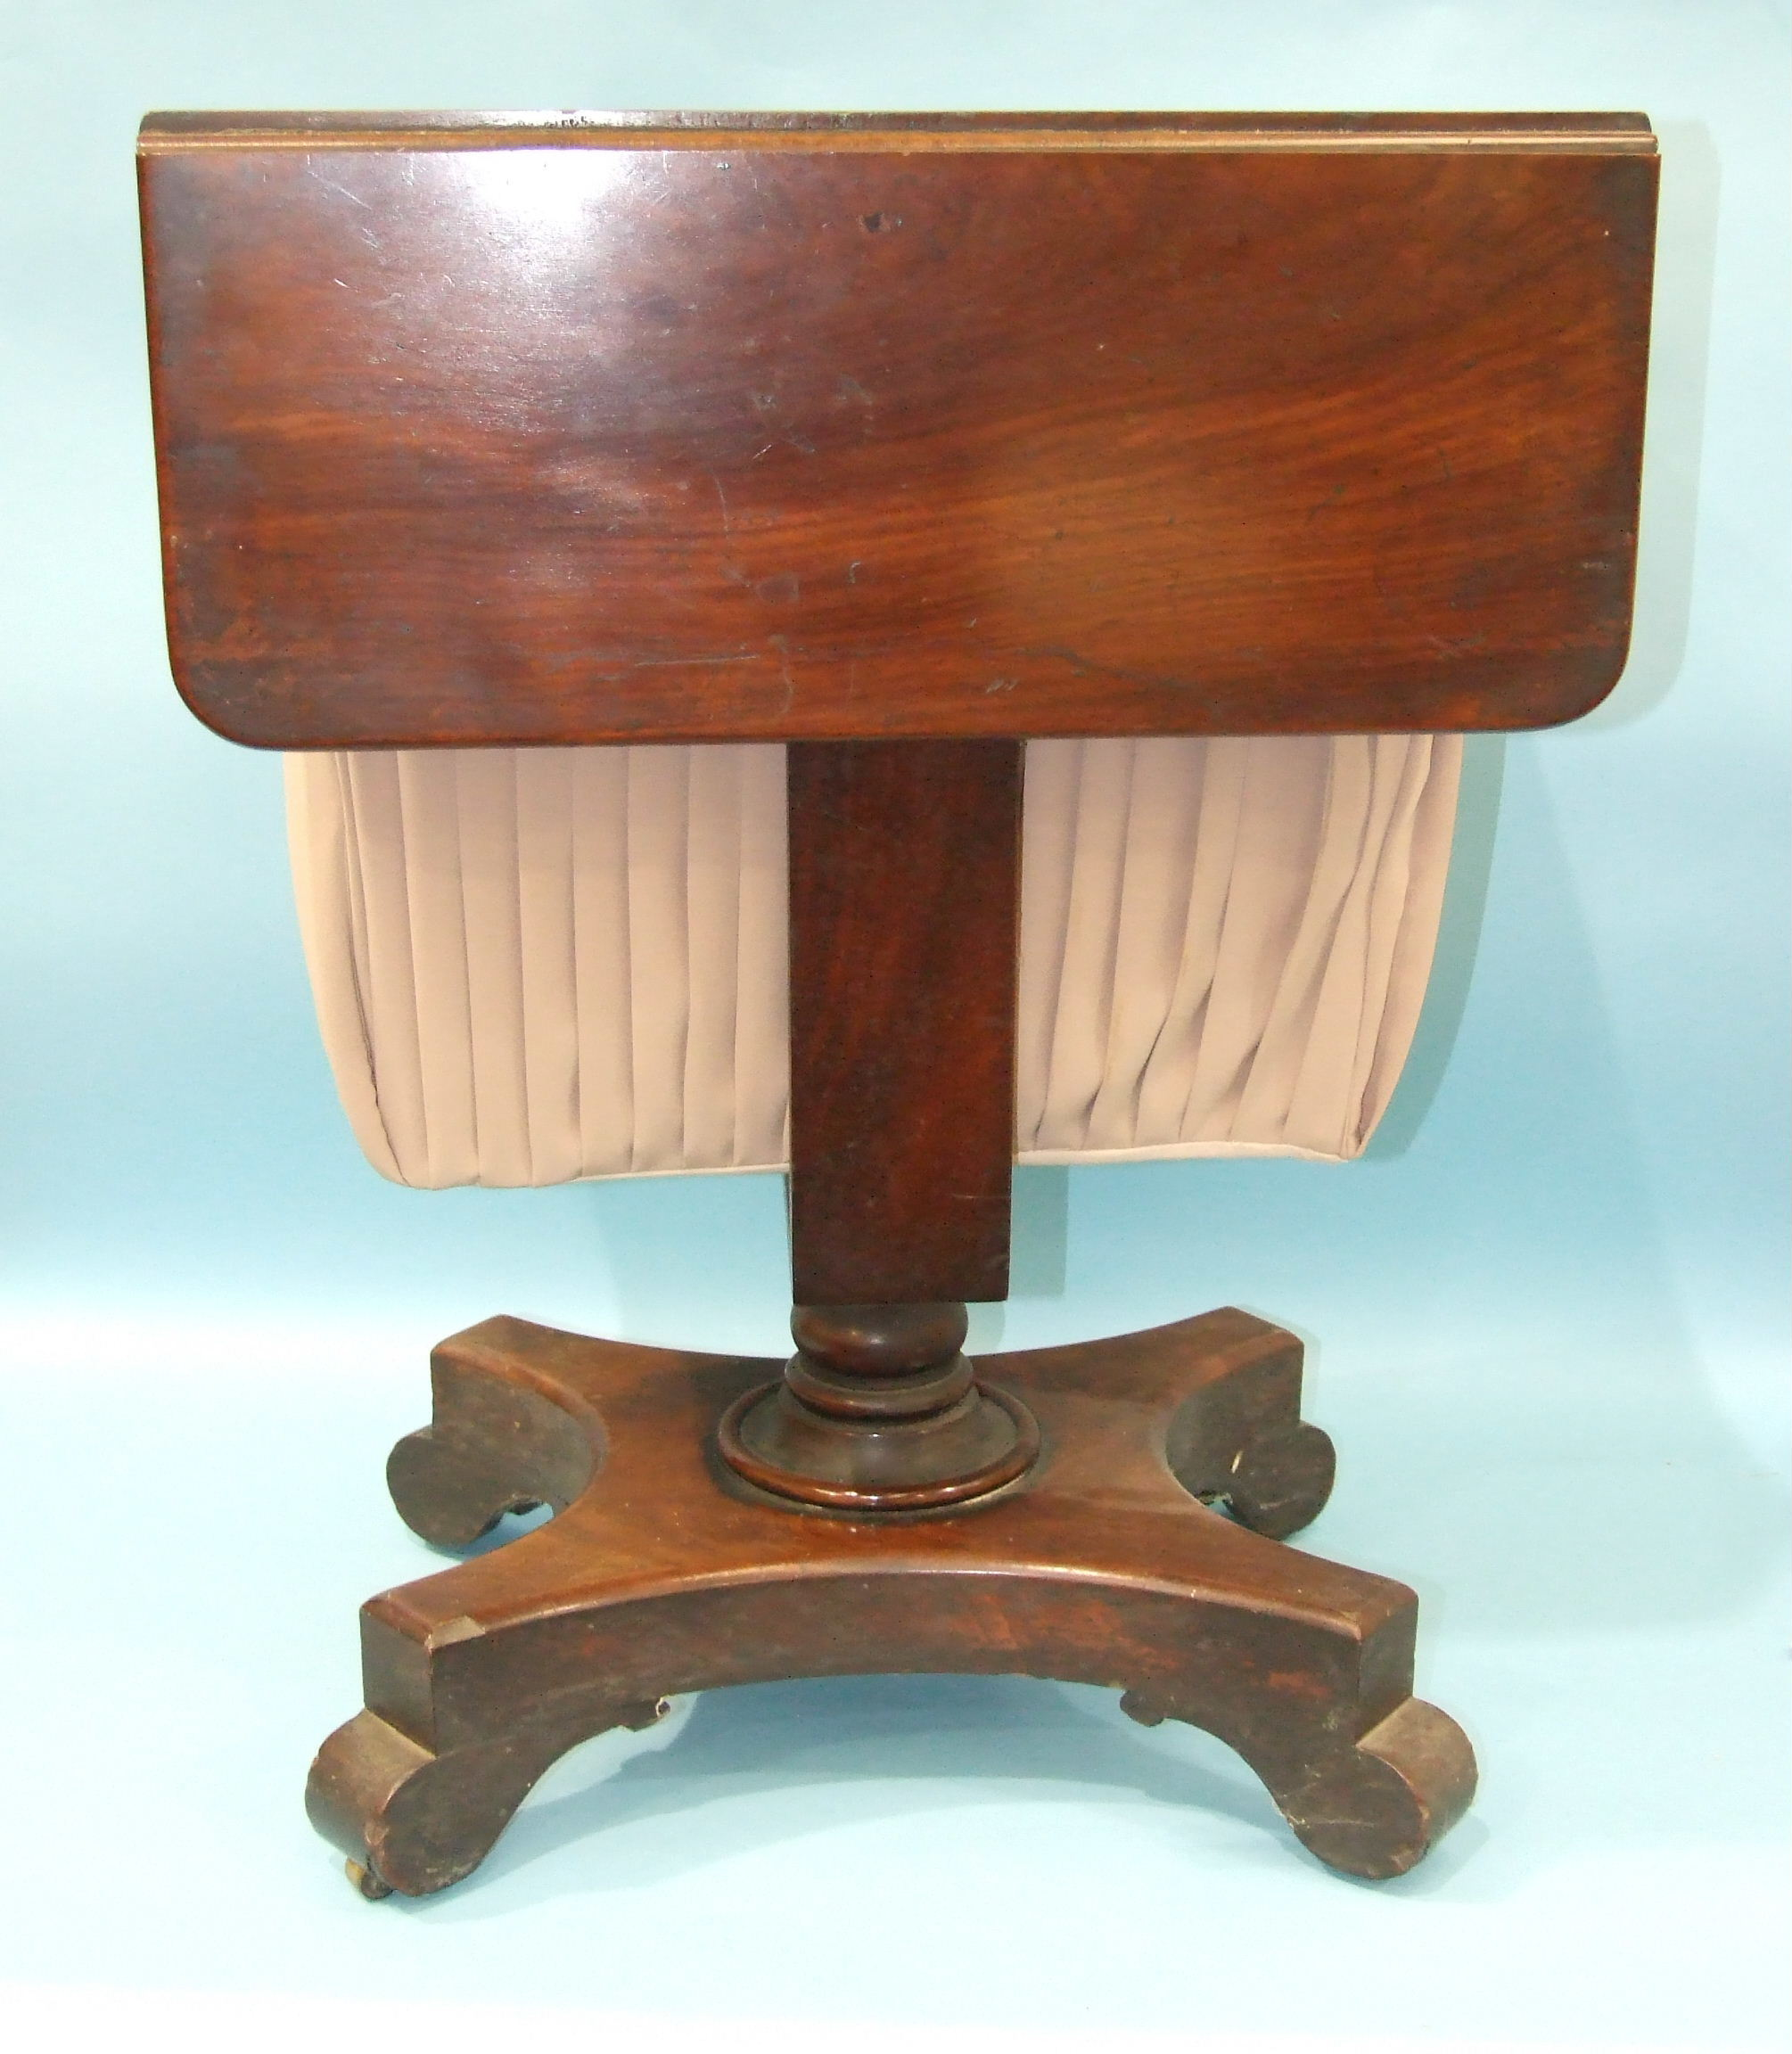 A William IV mahogany work table, the rectangular top with two drop leaves above a pair of drawers - Image 2 of 3